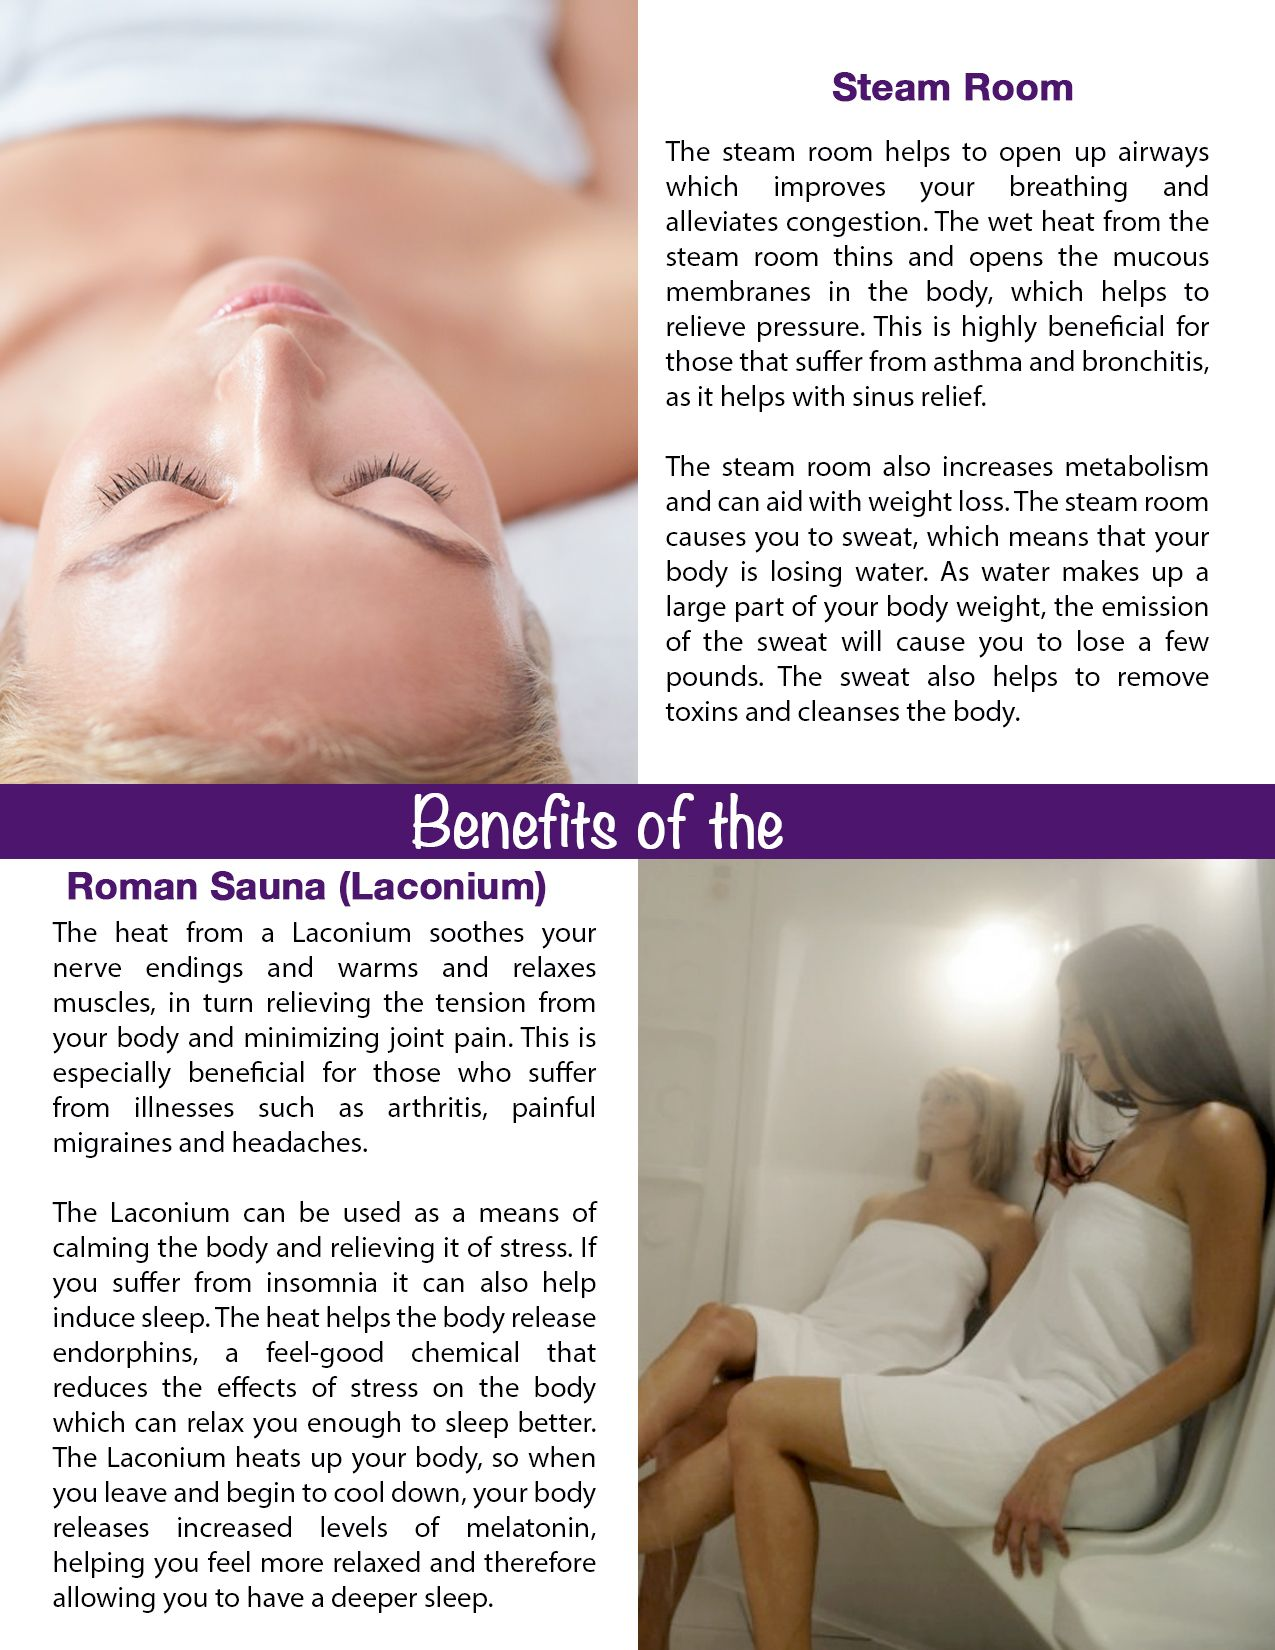 The benefits of the steam room and Lanconium (Roman Sauna) | Sault ...